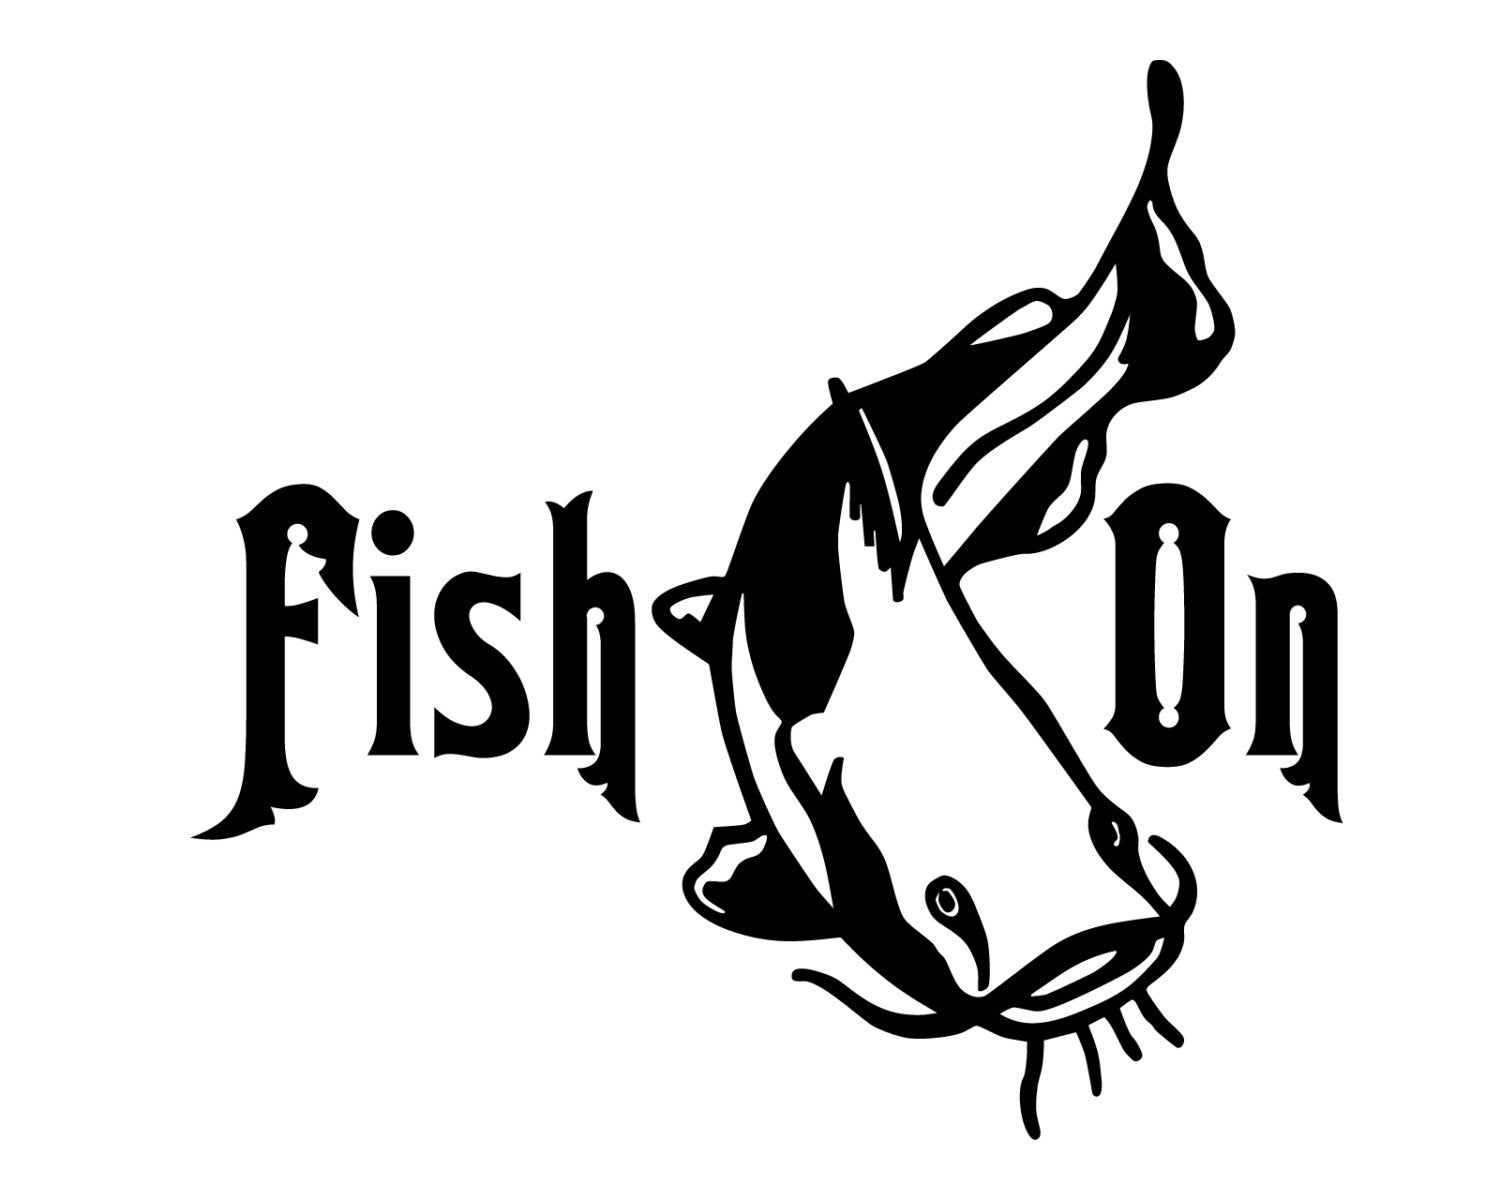 Catfish fishing decal fish on sticker outdoorsman catfish for Fishing stickers and decals